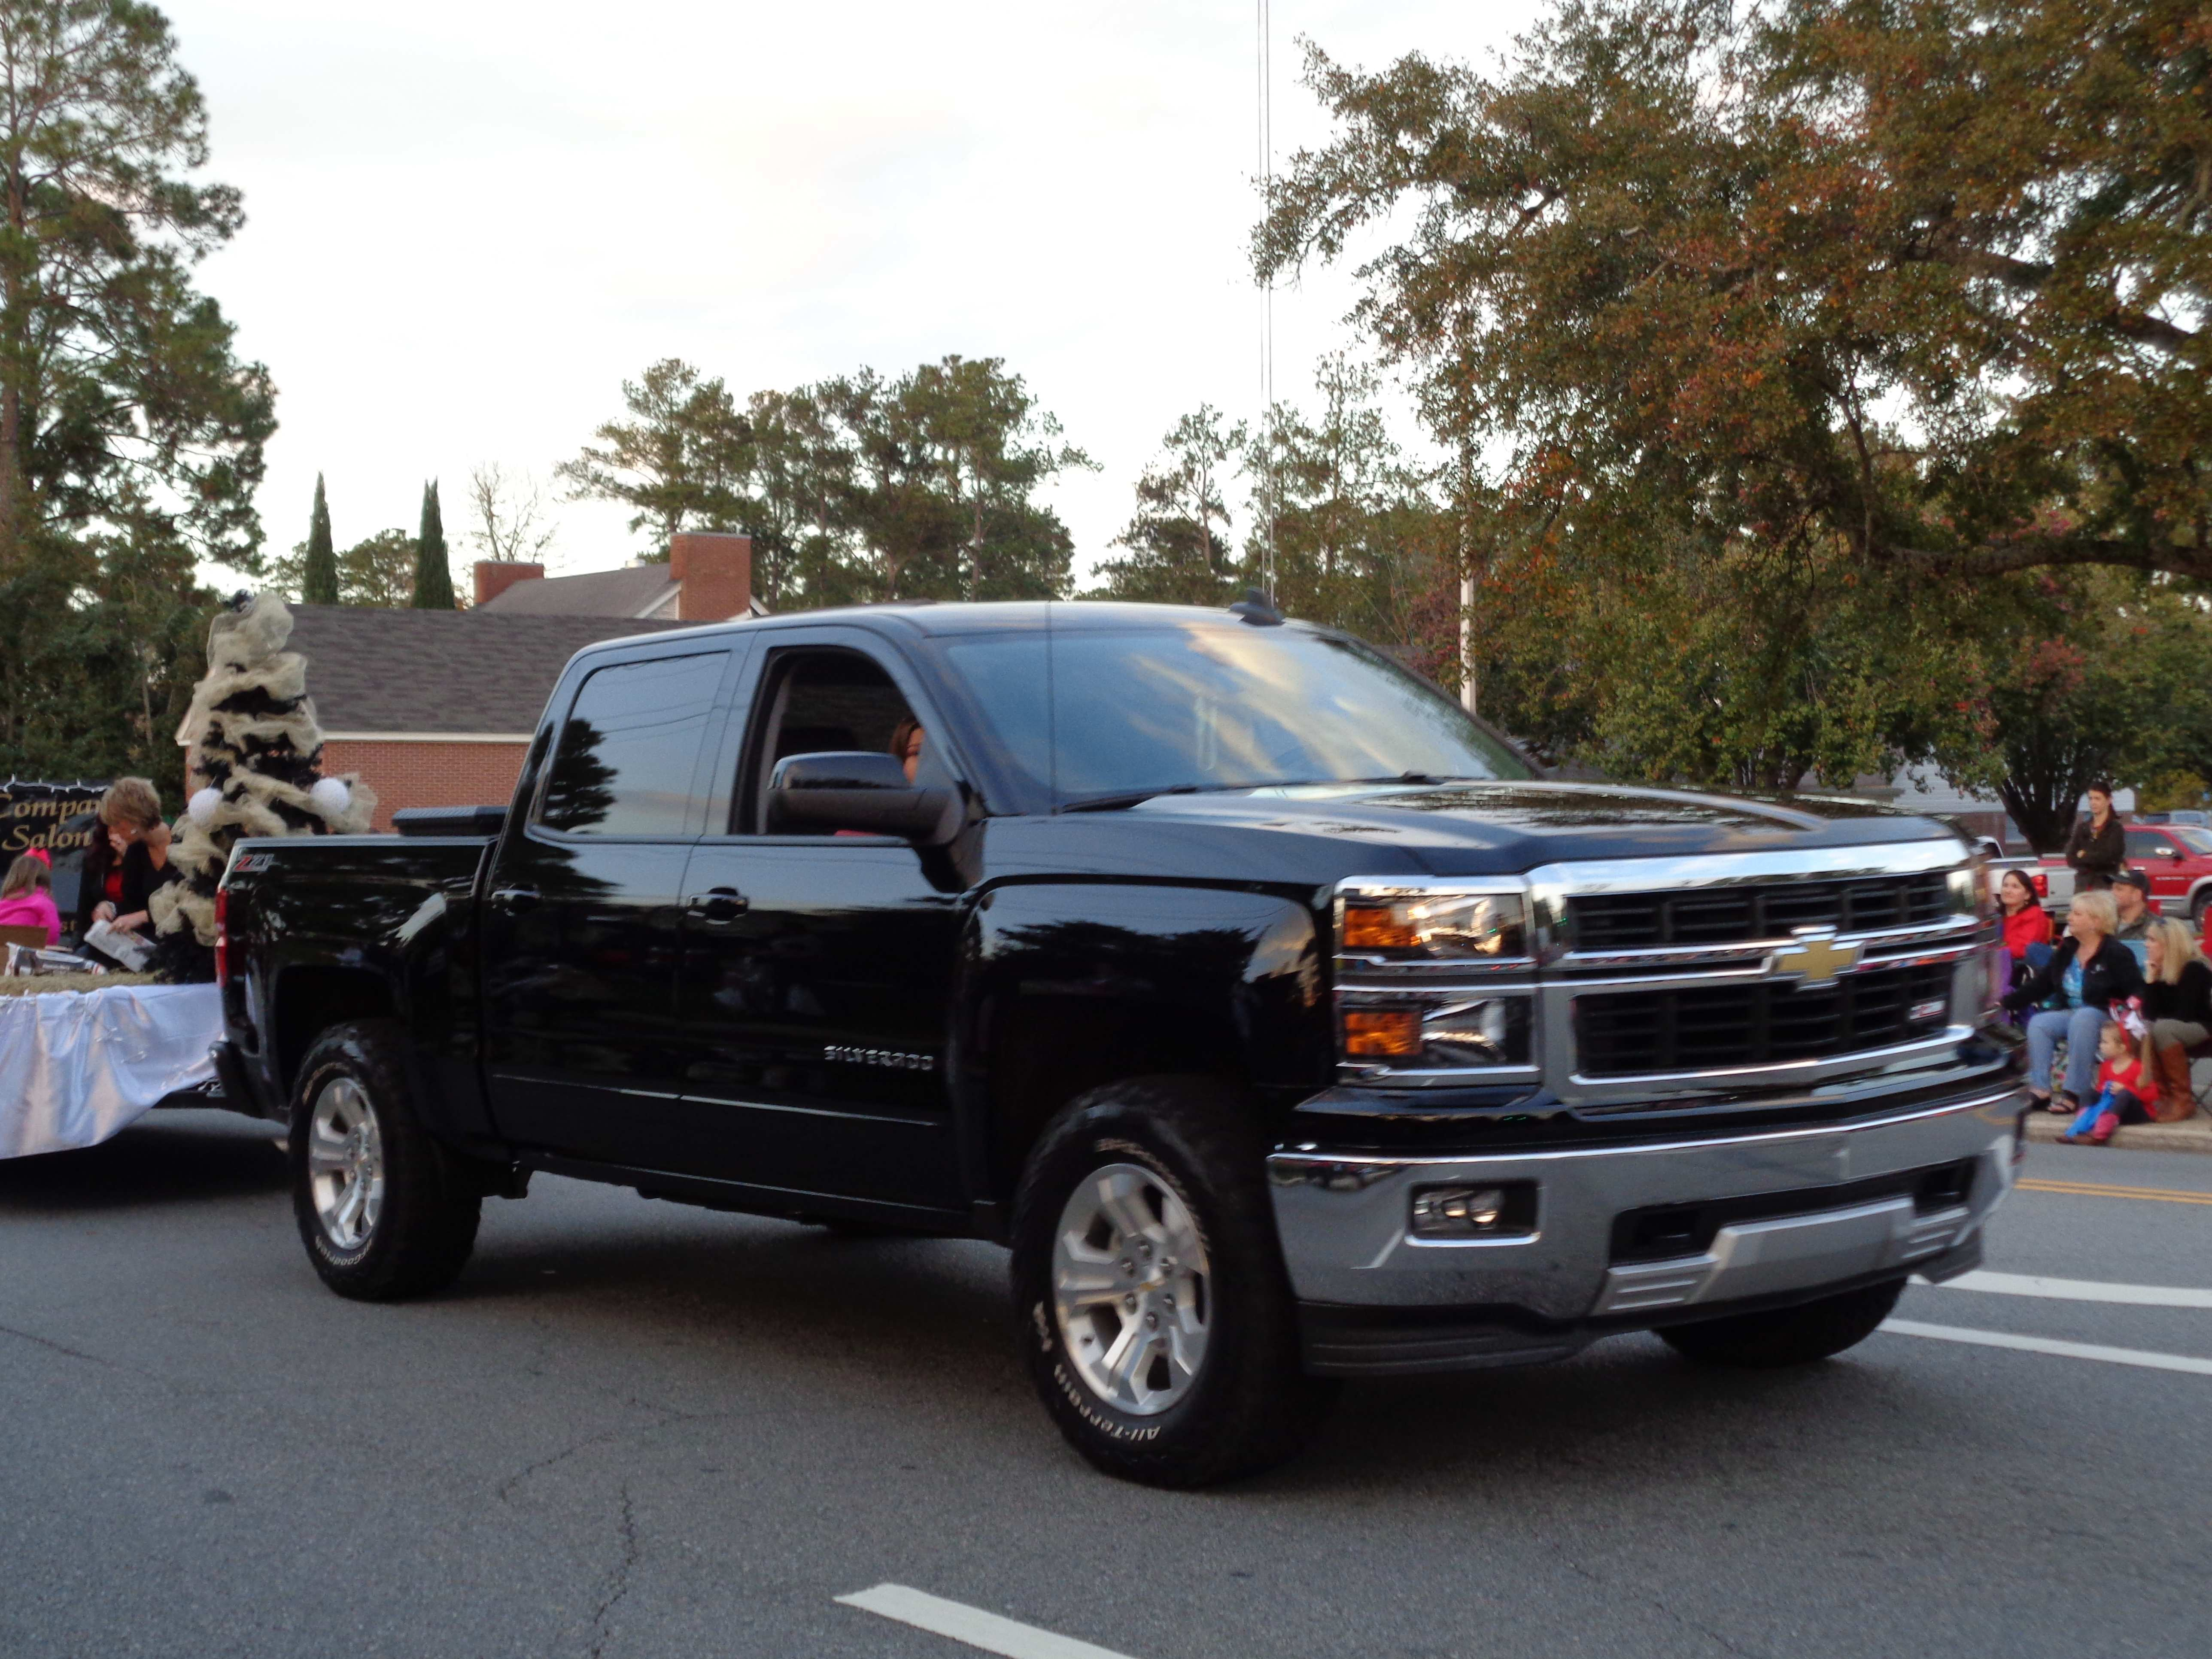 71 All New Chevrolet Silverado Ss 2020 Review And Release Date